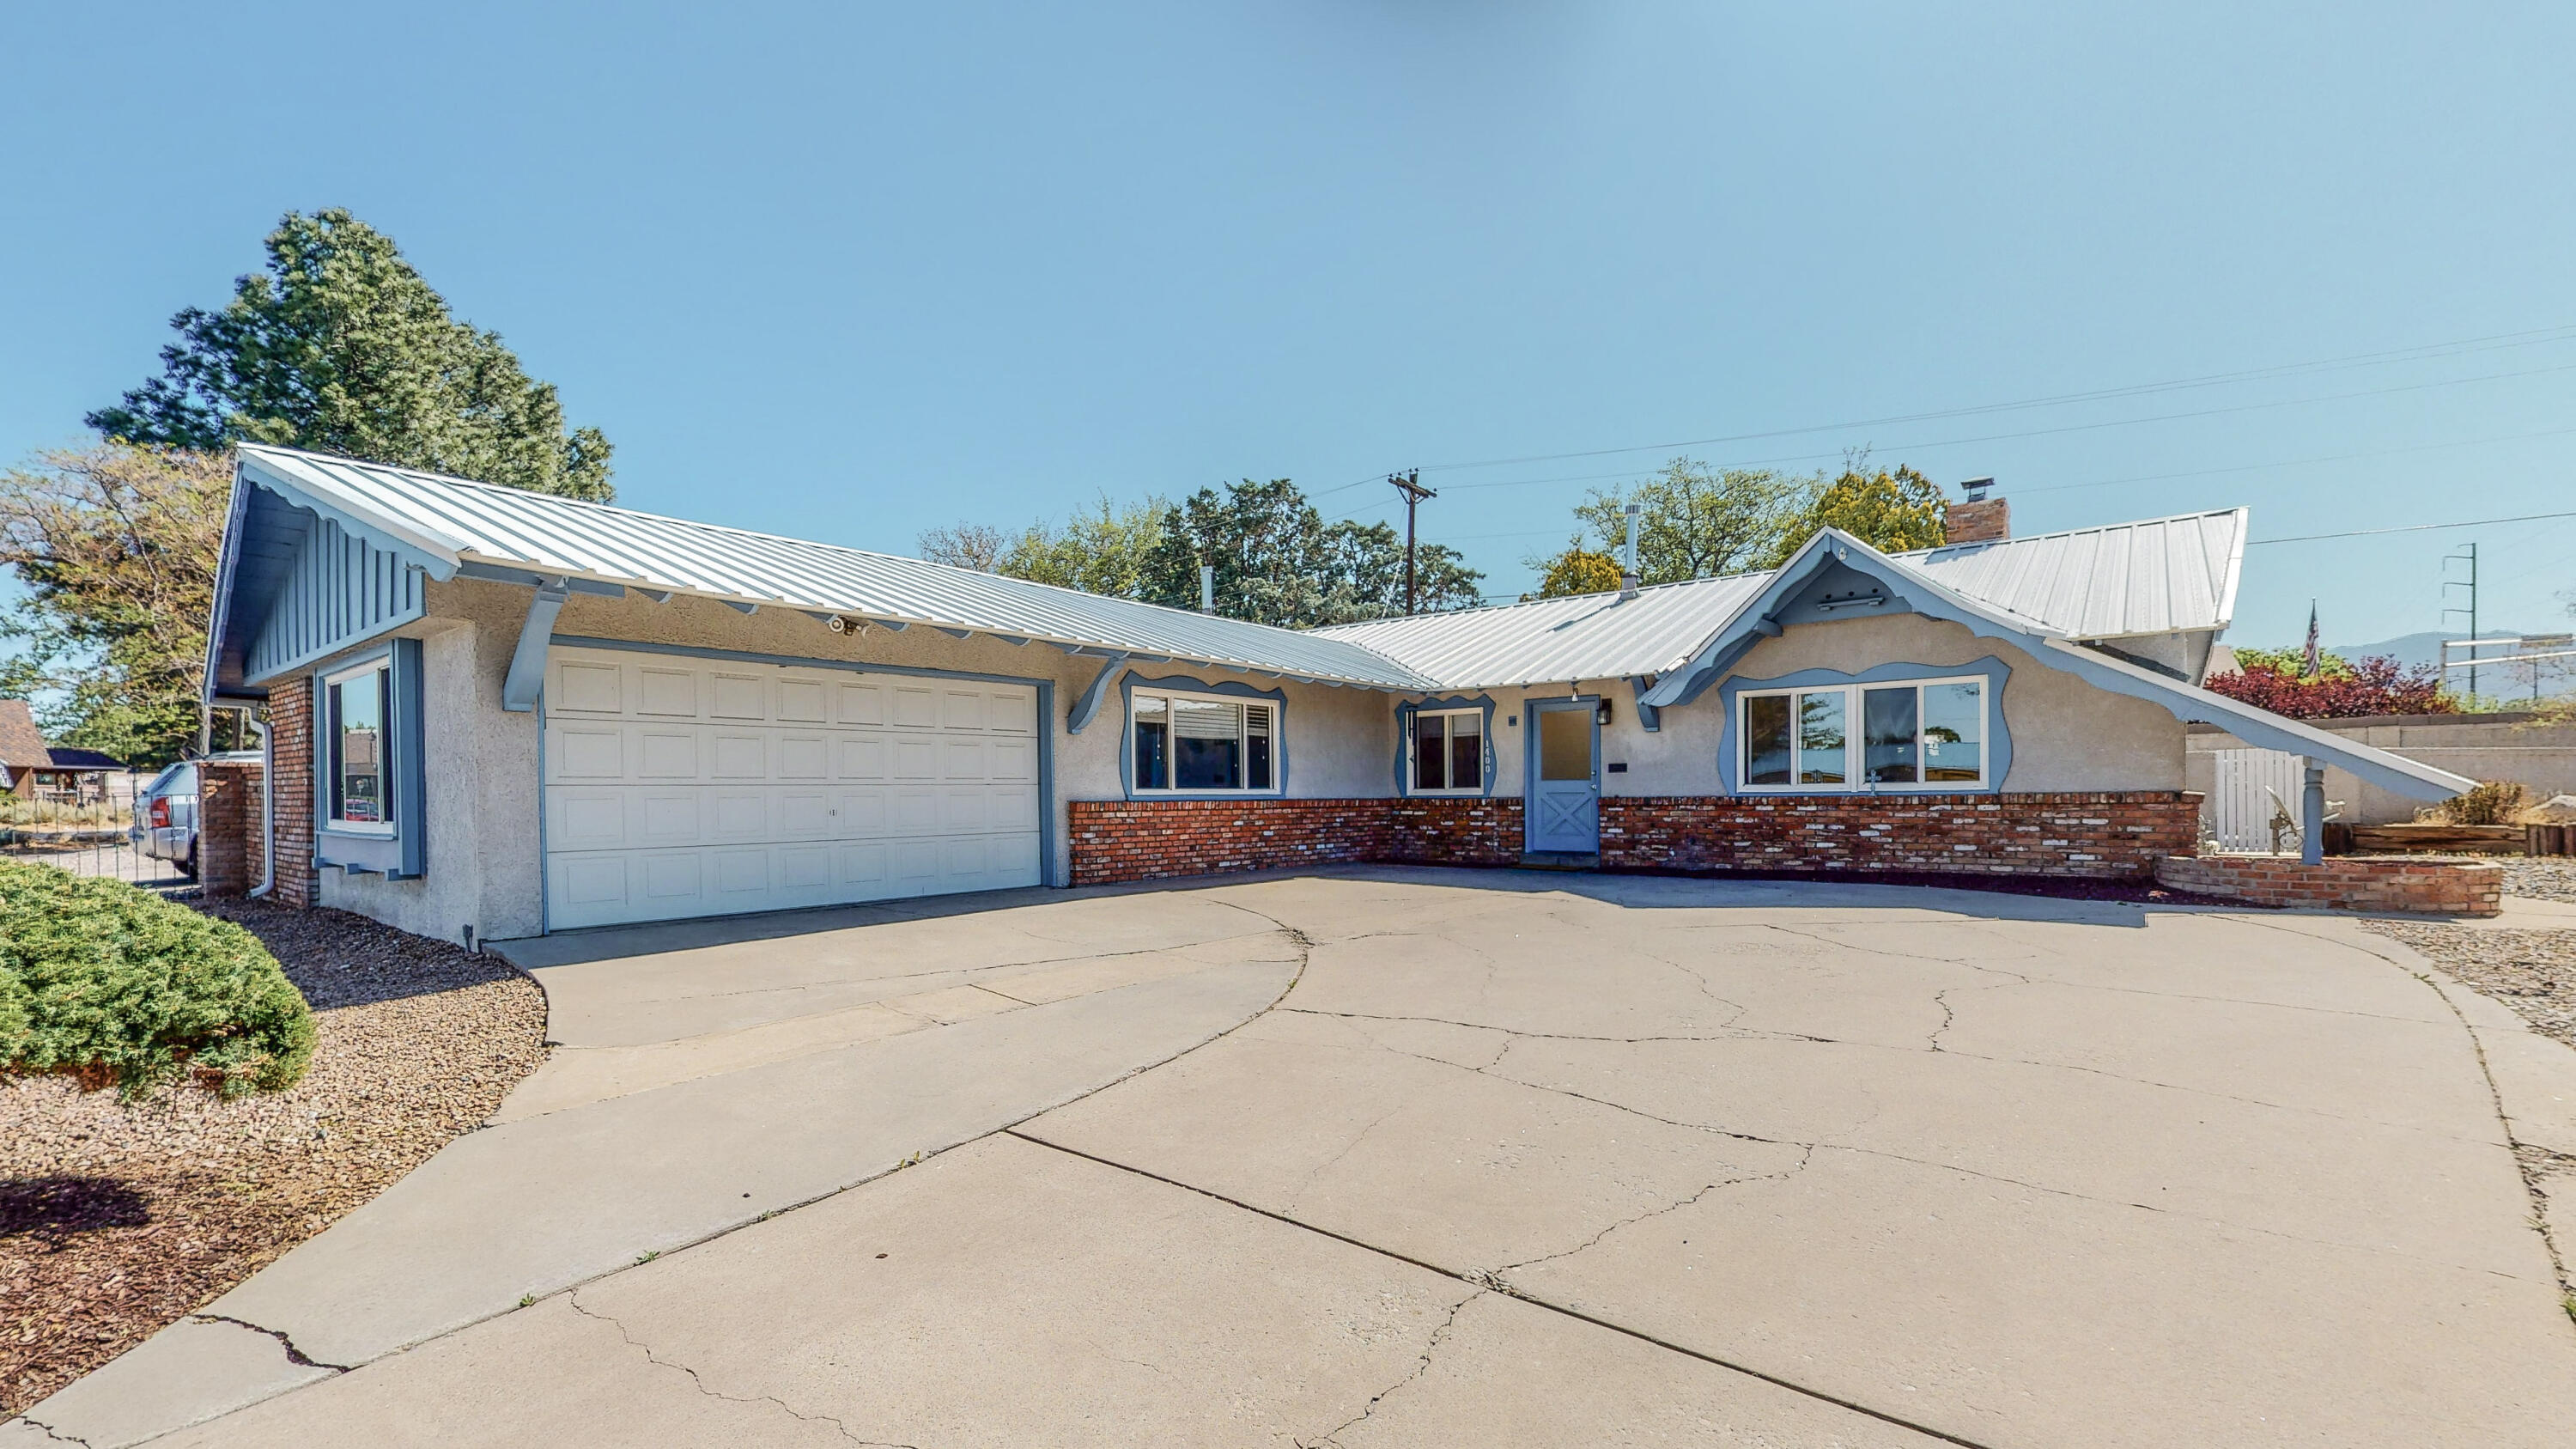 Come see this beautiful 3 bedroom 2 bath home located in Albuquerque's N.E. heights. Your family will enjoy relaxing in the huge family room. Enjoy the convenient location of this property with nearby restaurants and shopping. Home is beautifully maintained schedule your showing today!